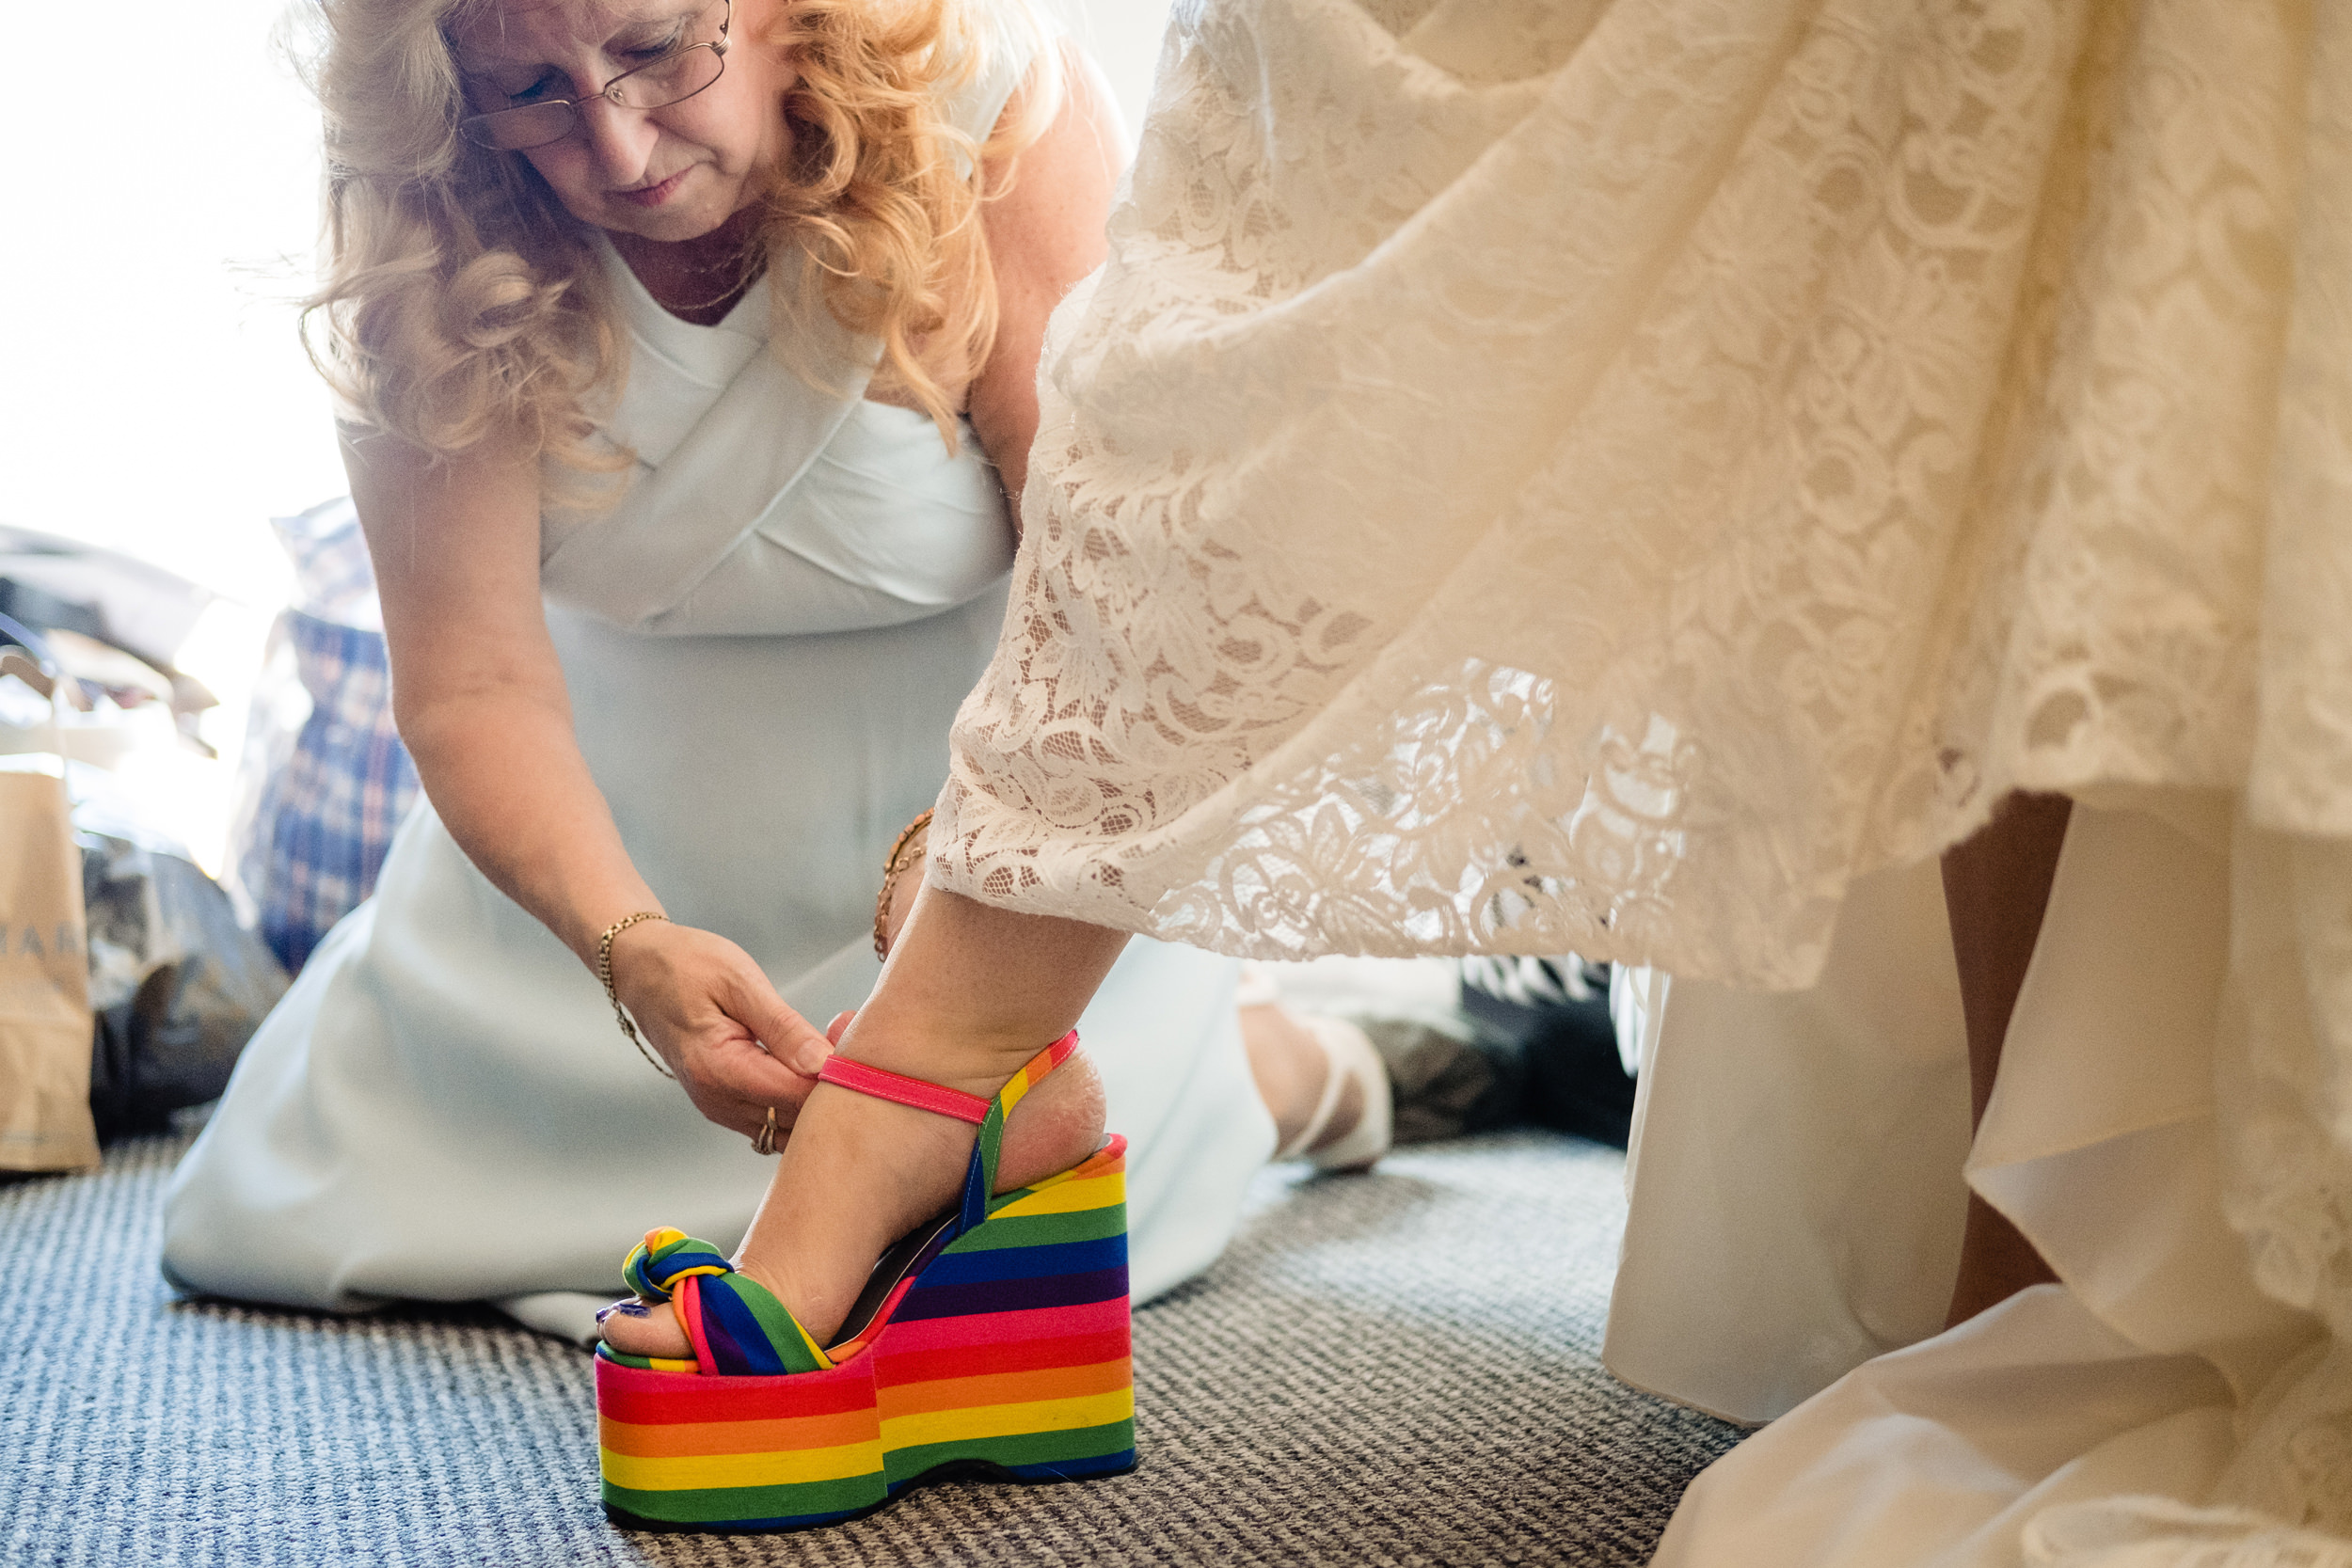 bride's mum helping bride put shoes on. plough inn, hathersage wedding photography by emma and rich.